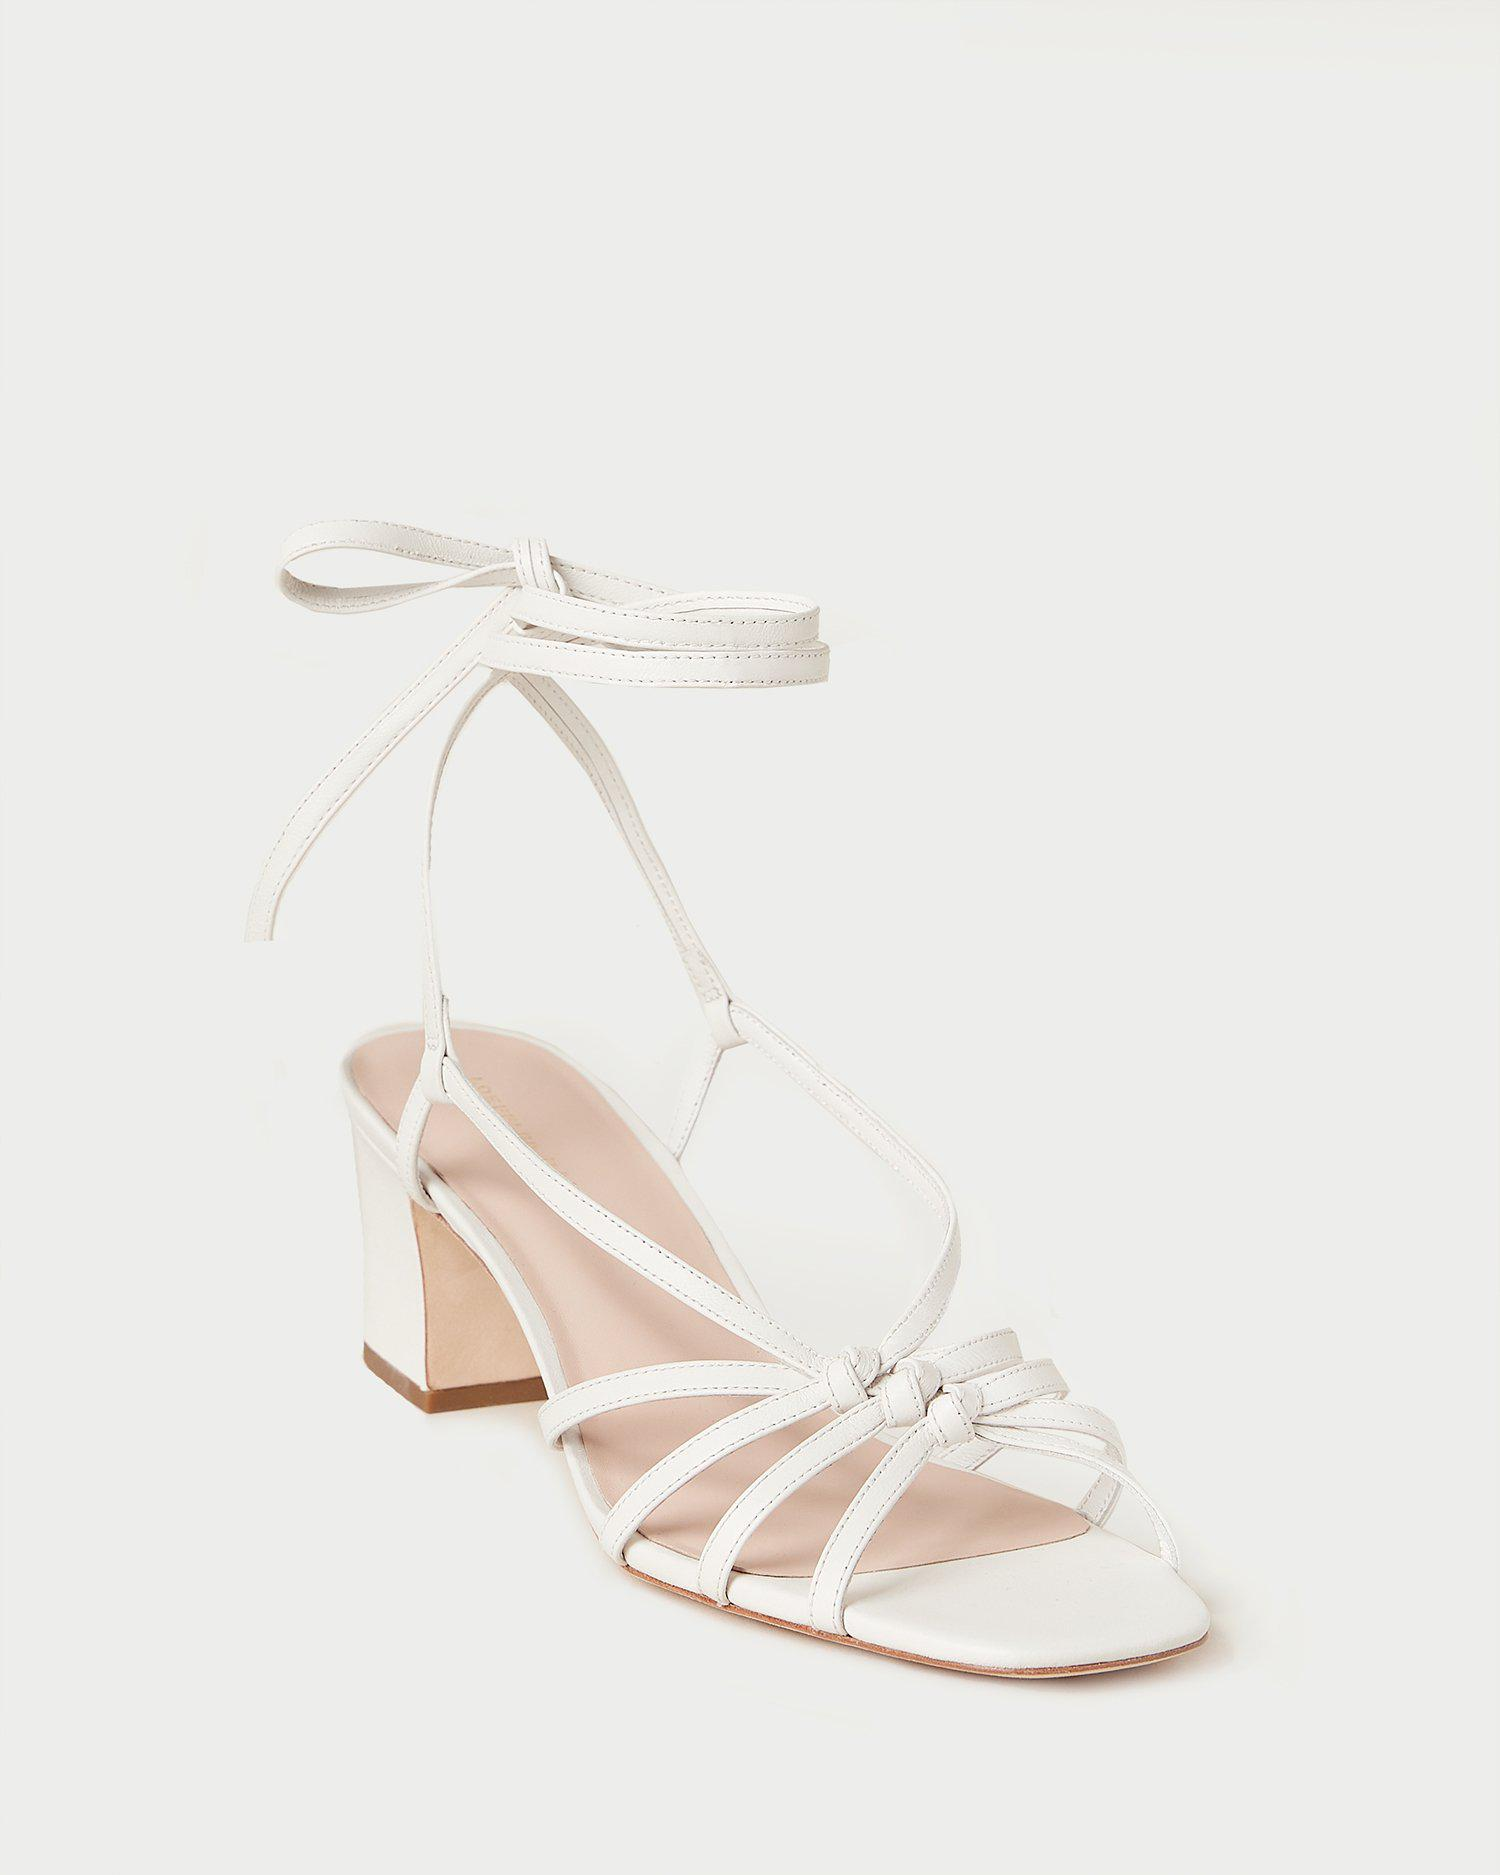 Libby White Knotted Wrap Sandal